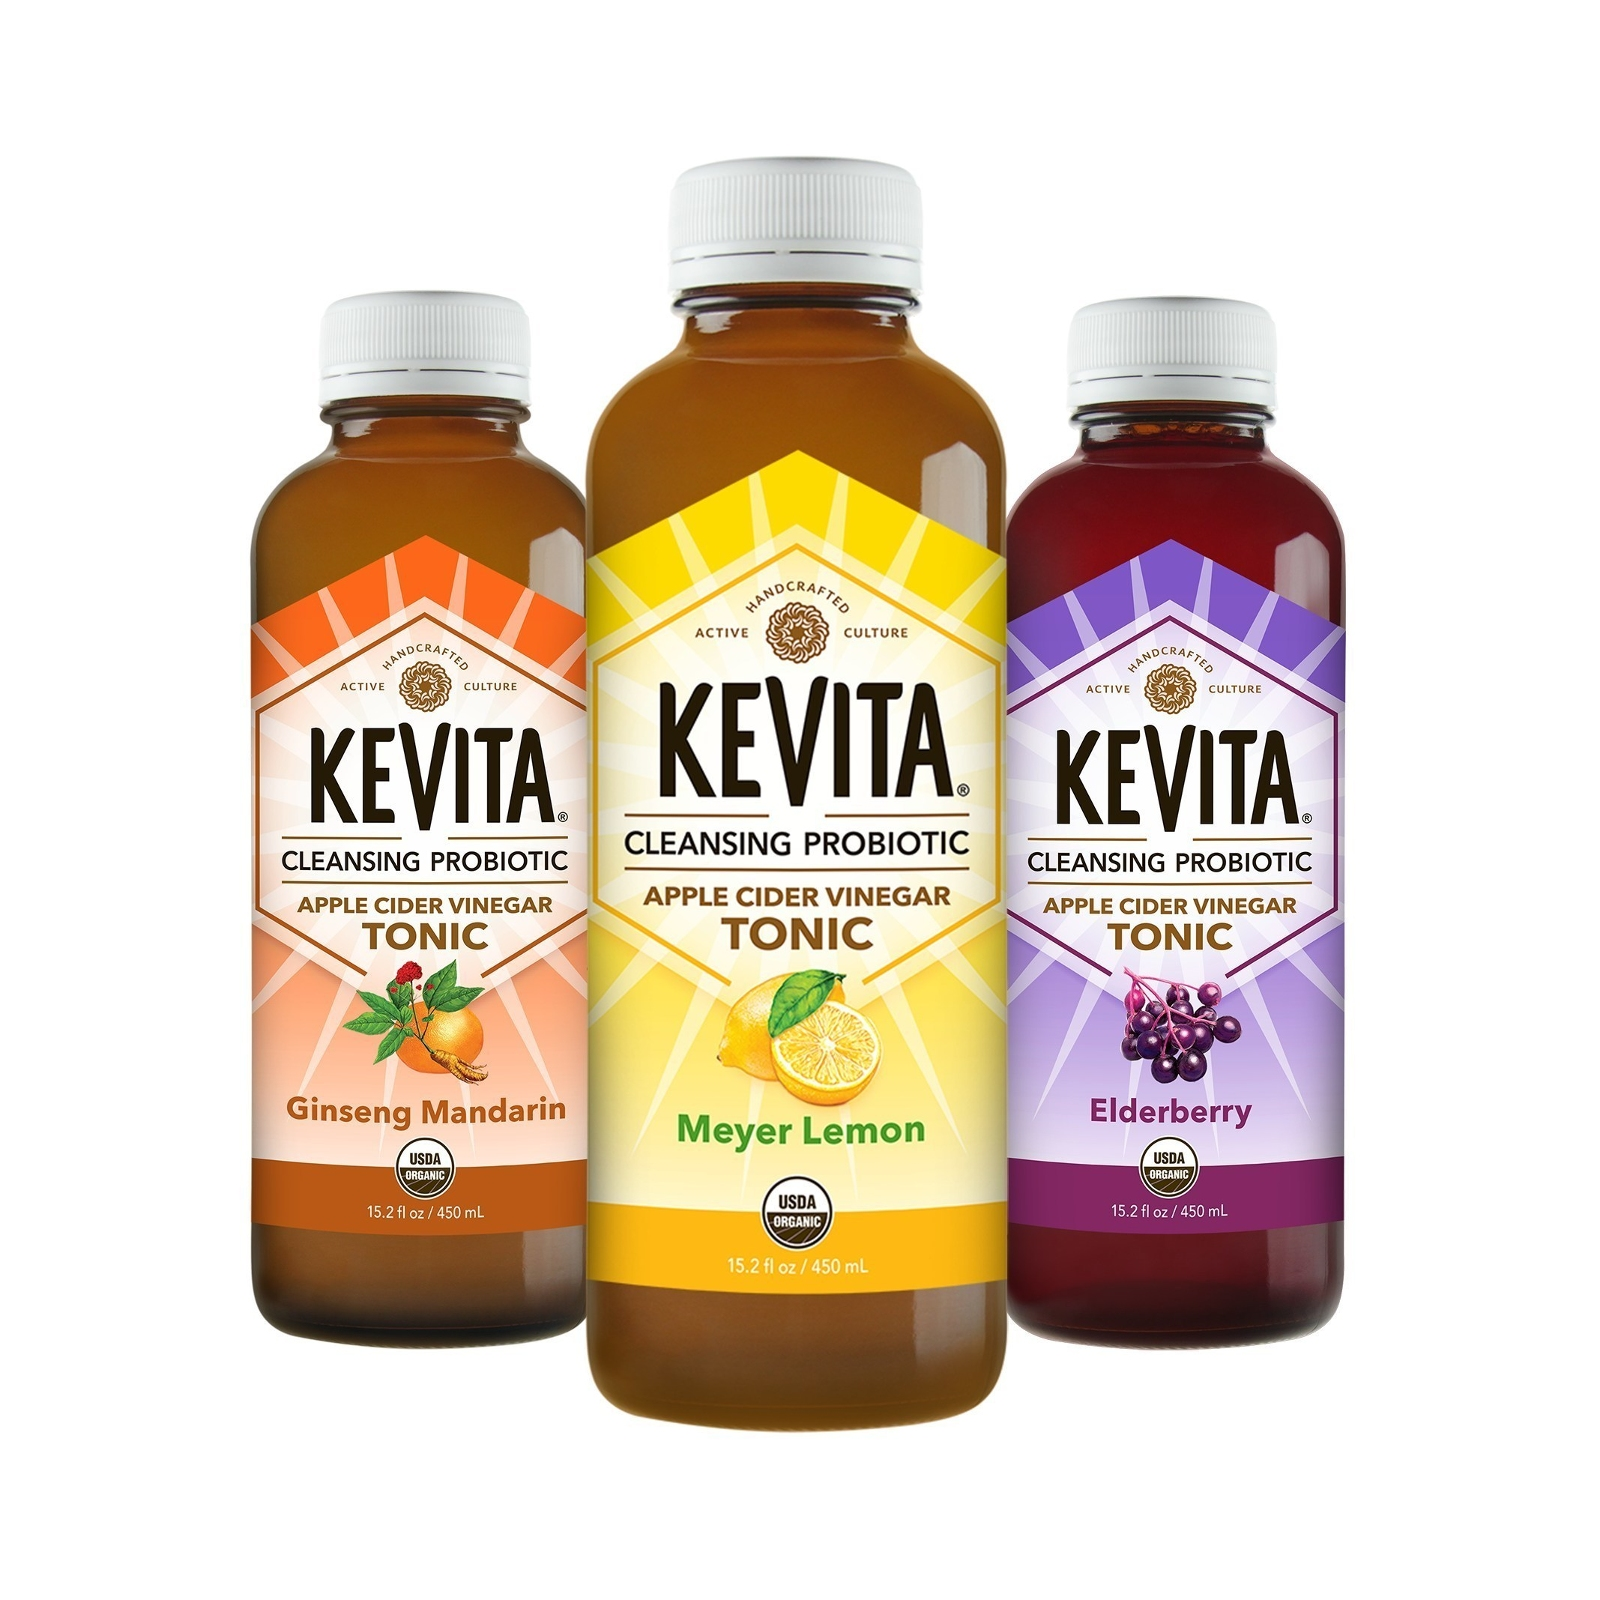 Kevita Adds Three New Flavors To Its Line Of Probiotic